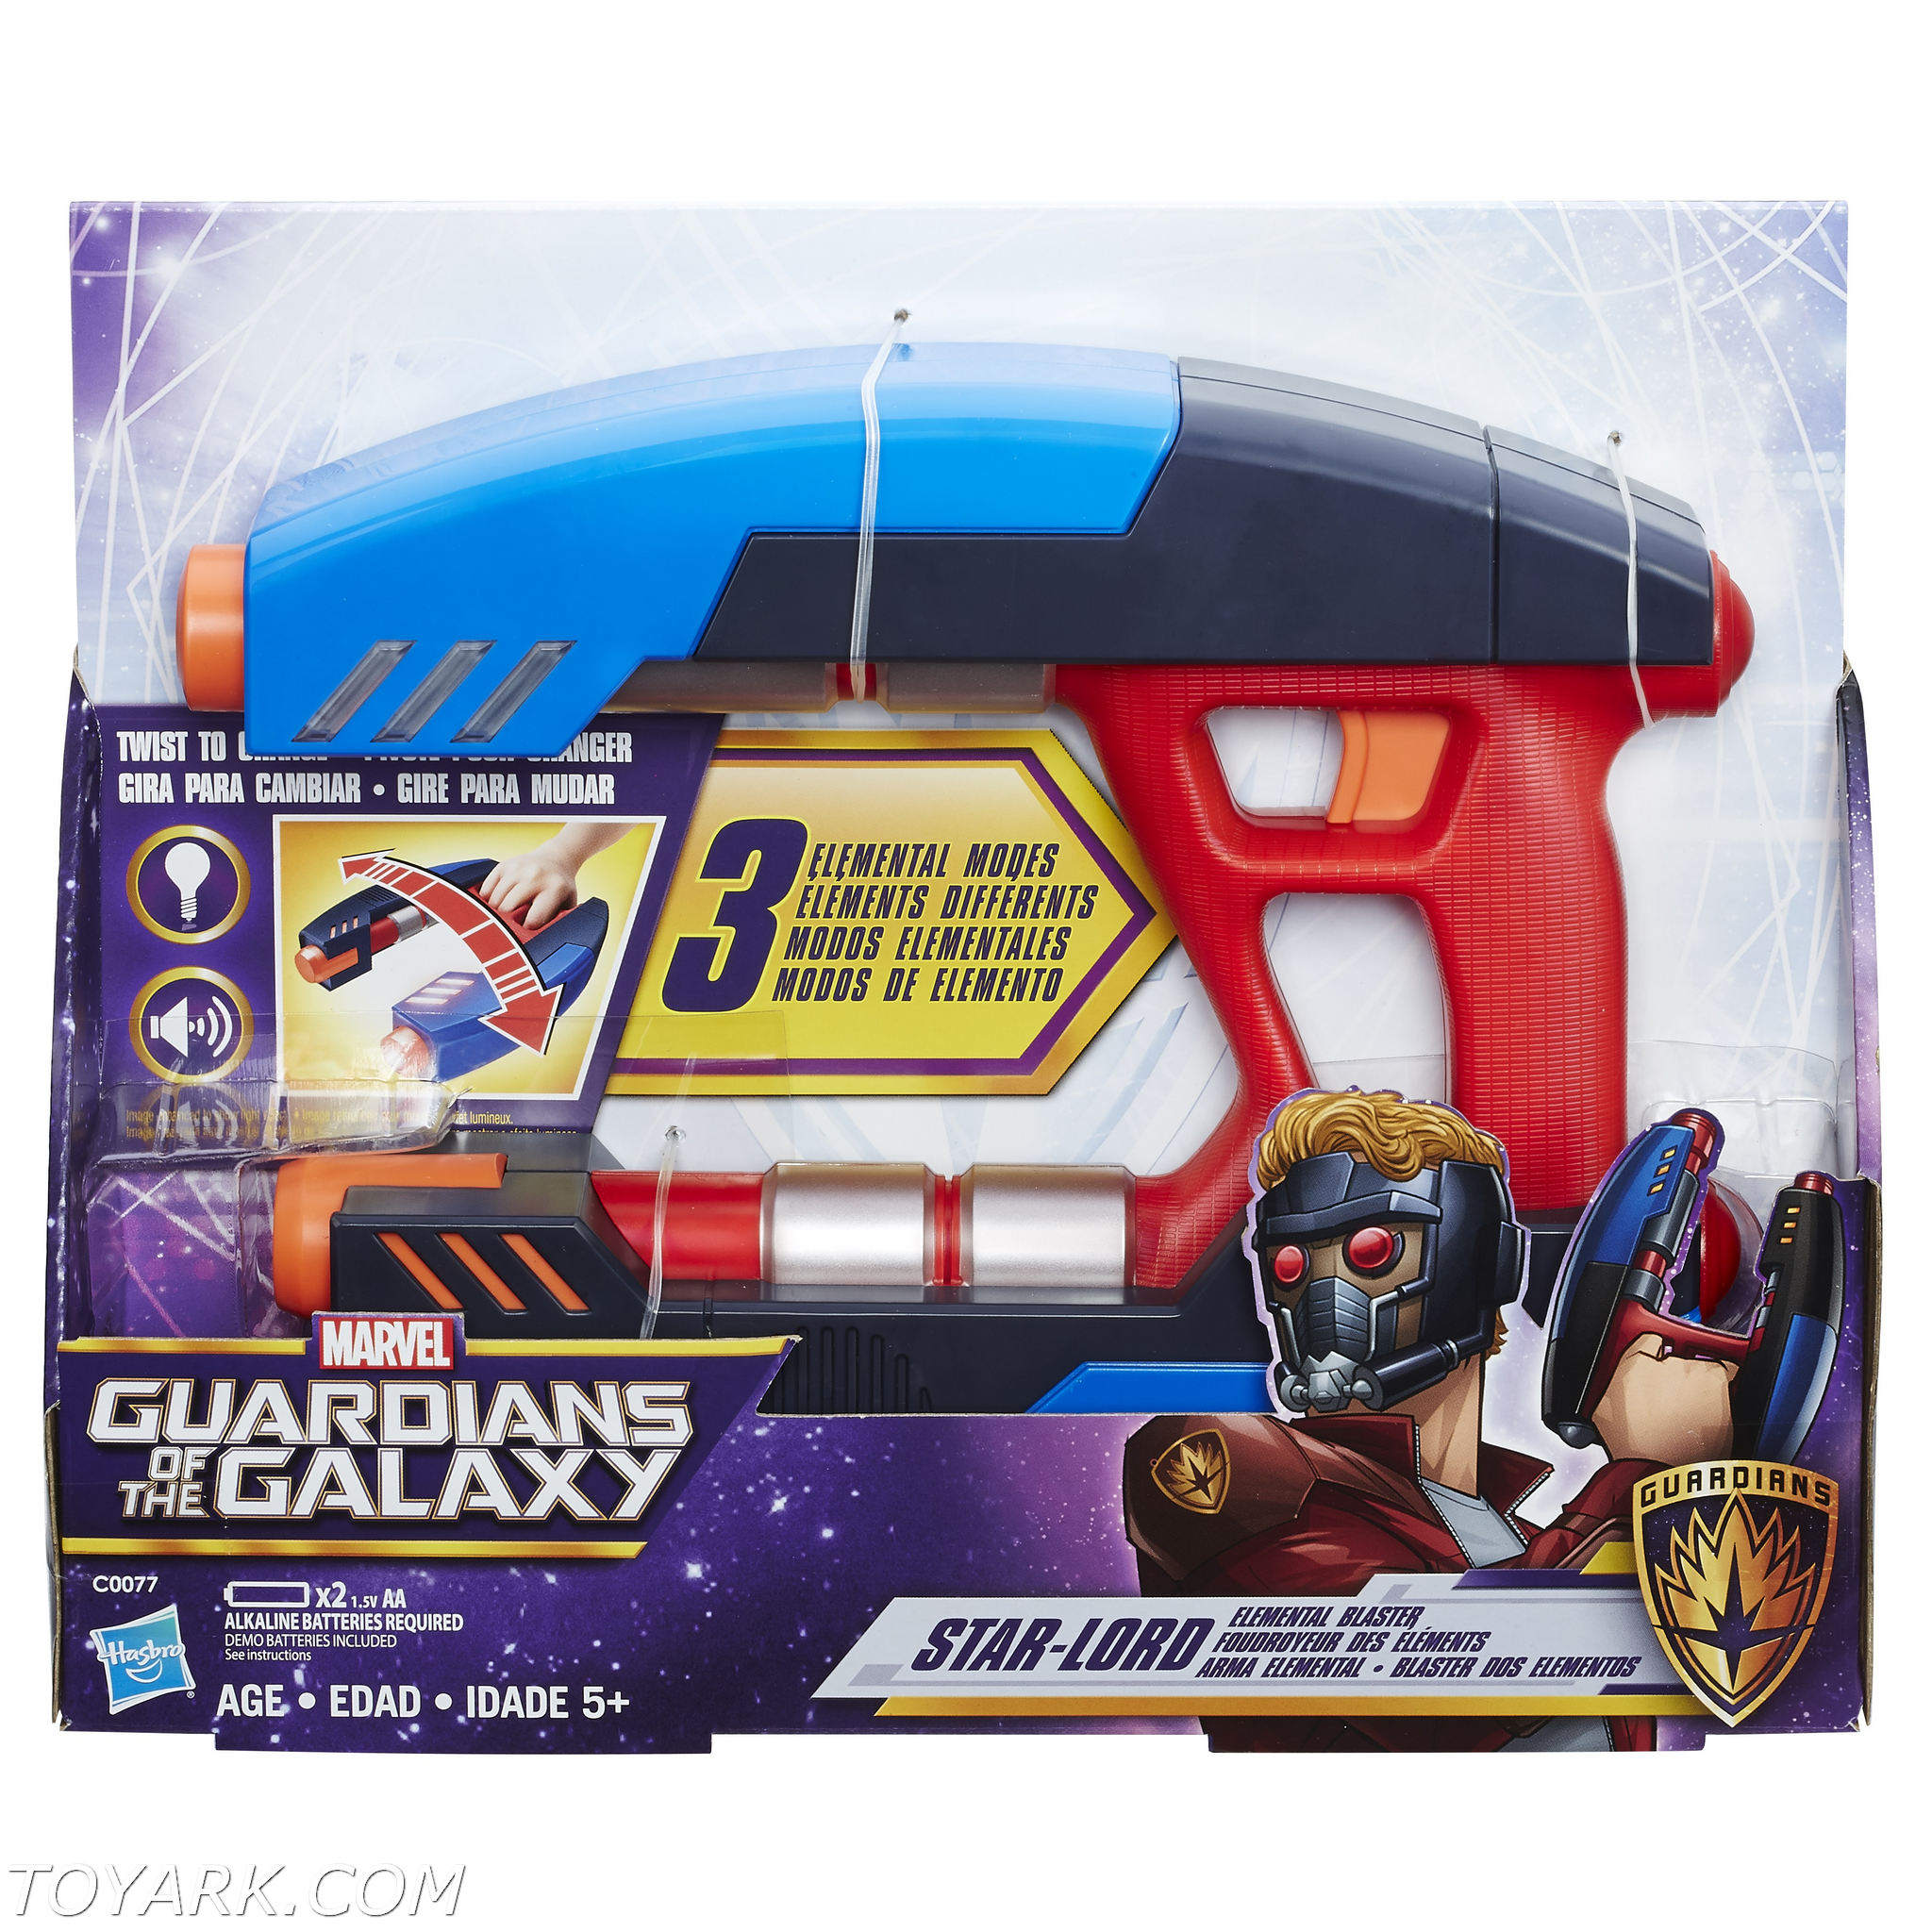 Guardians of the Galaxy Vol 2 Hasbro 2017 Star Lord Blaster ...